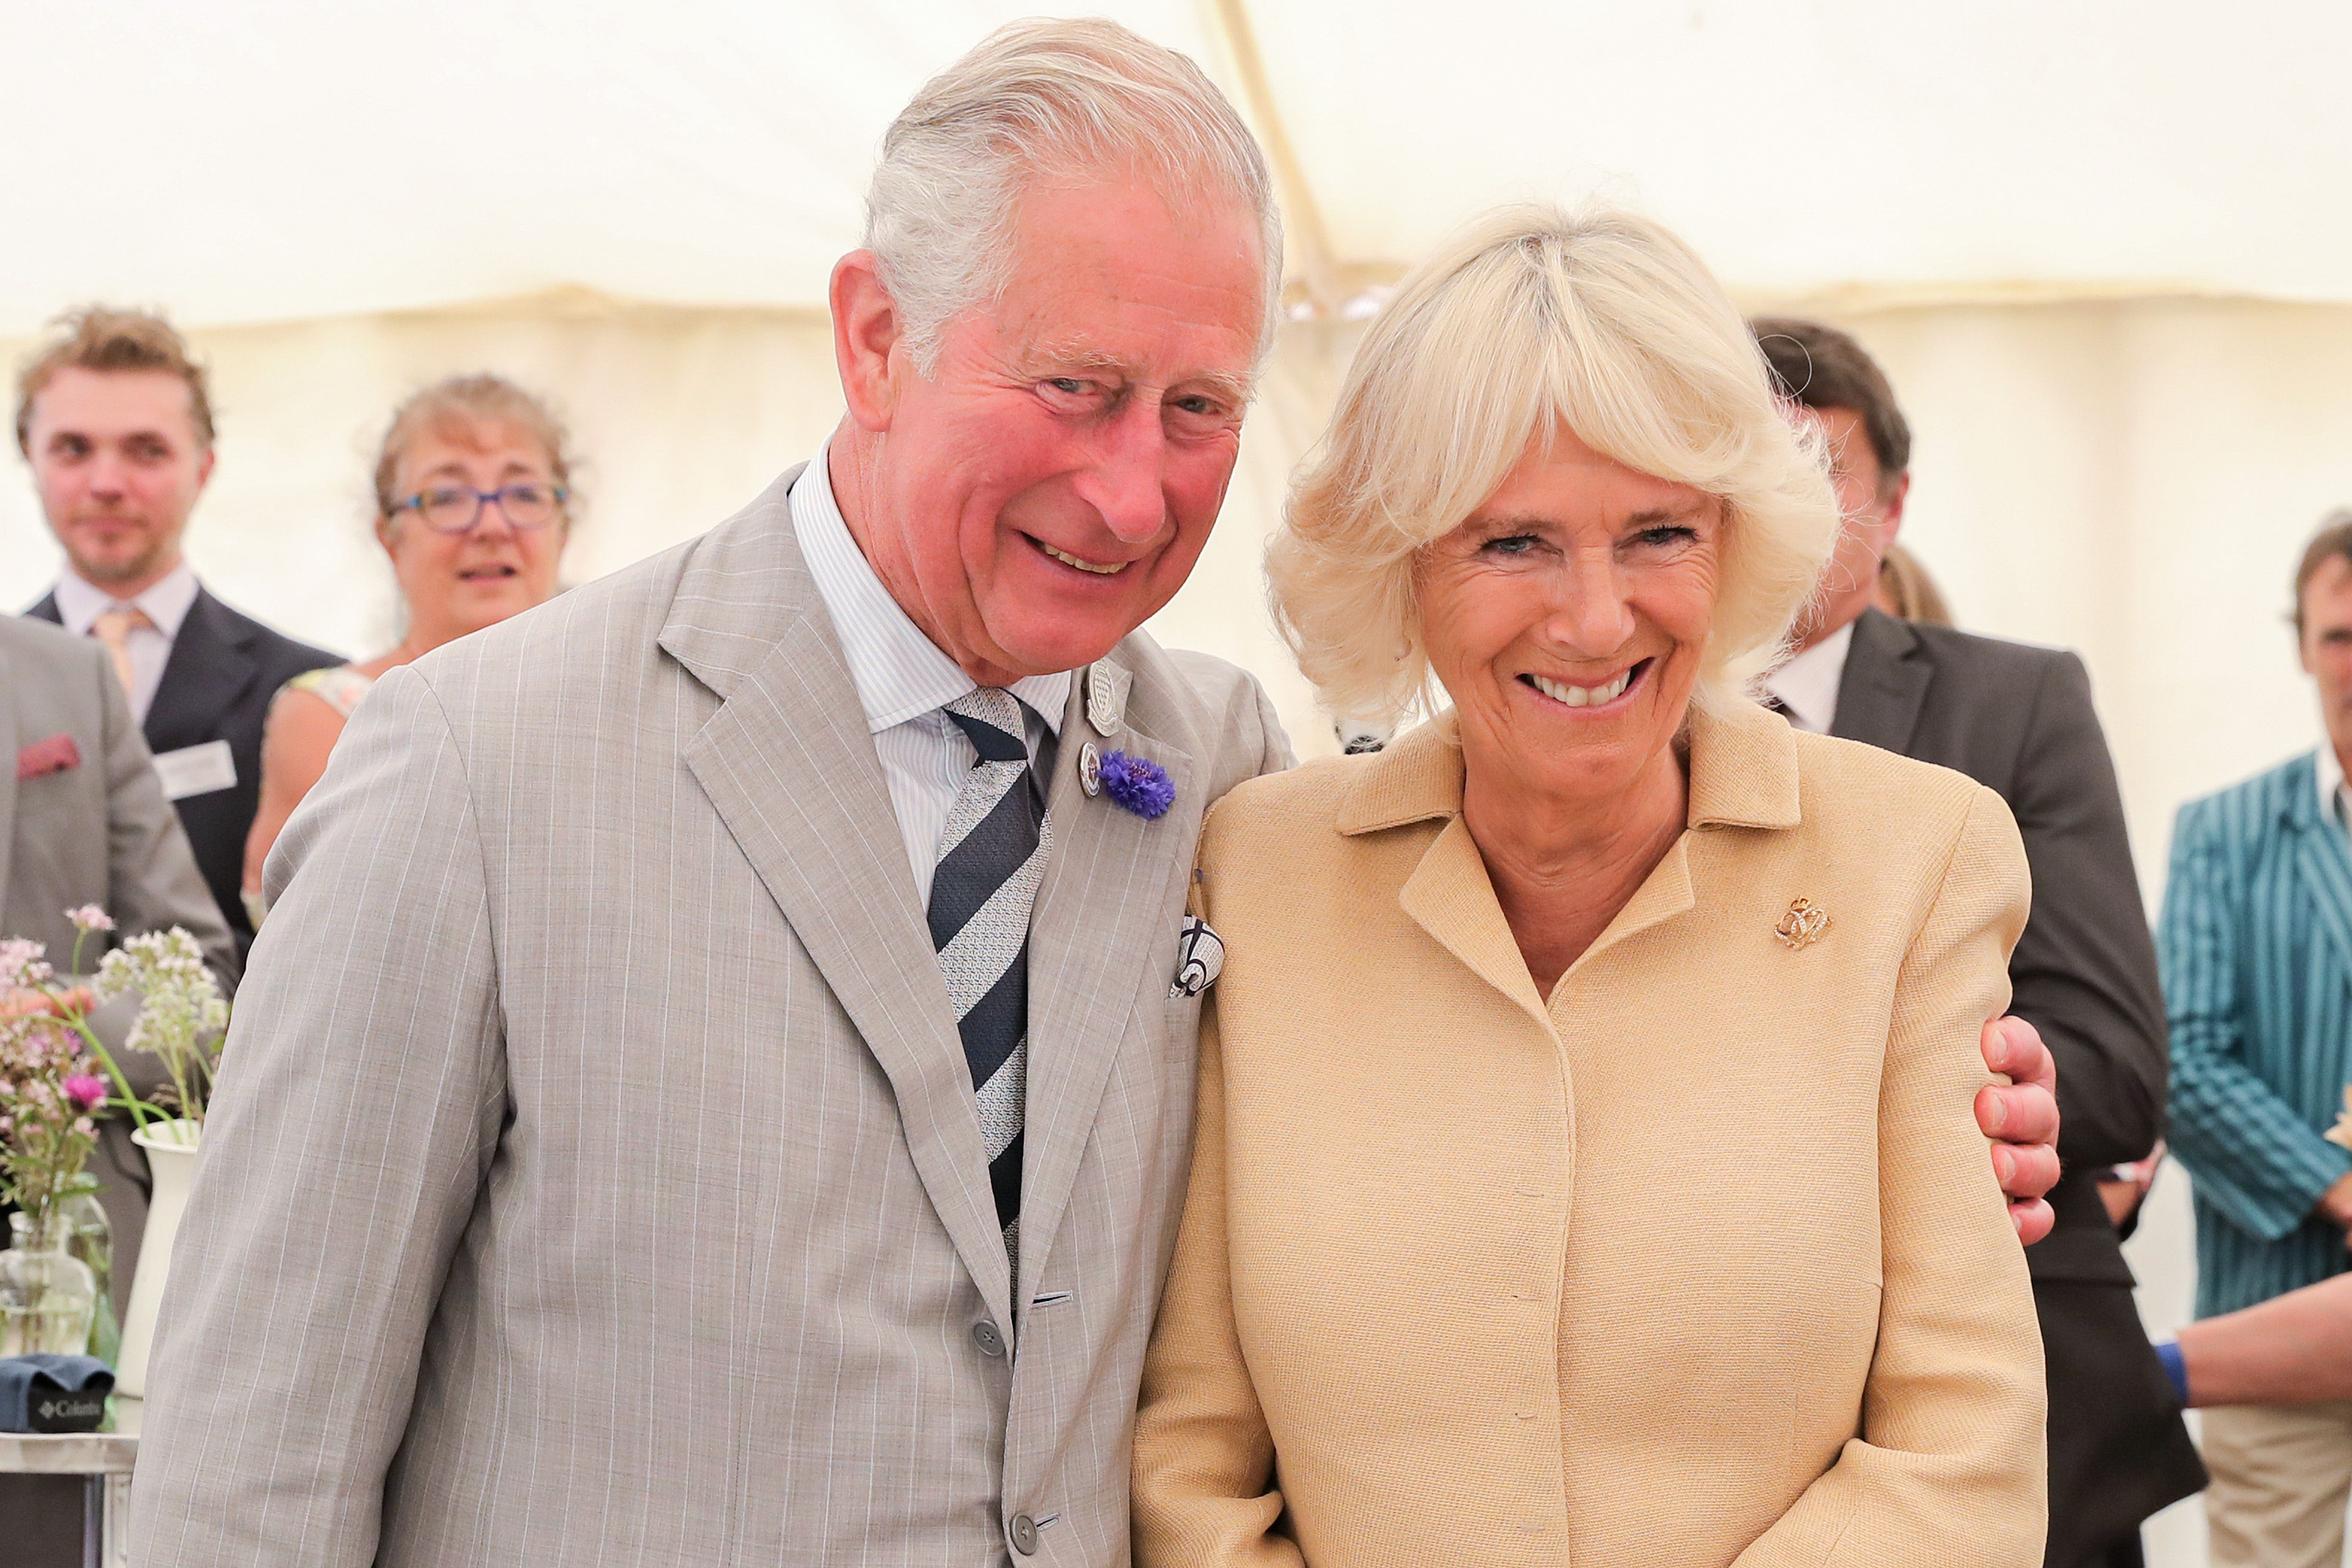 Prince Charles and Duchess Camilla Have Their First COVID-19 Vaccinations